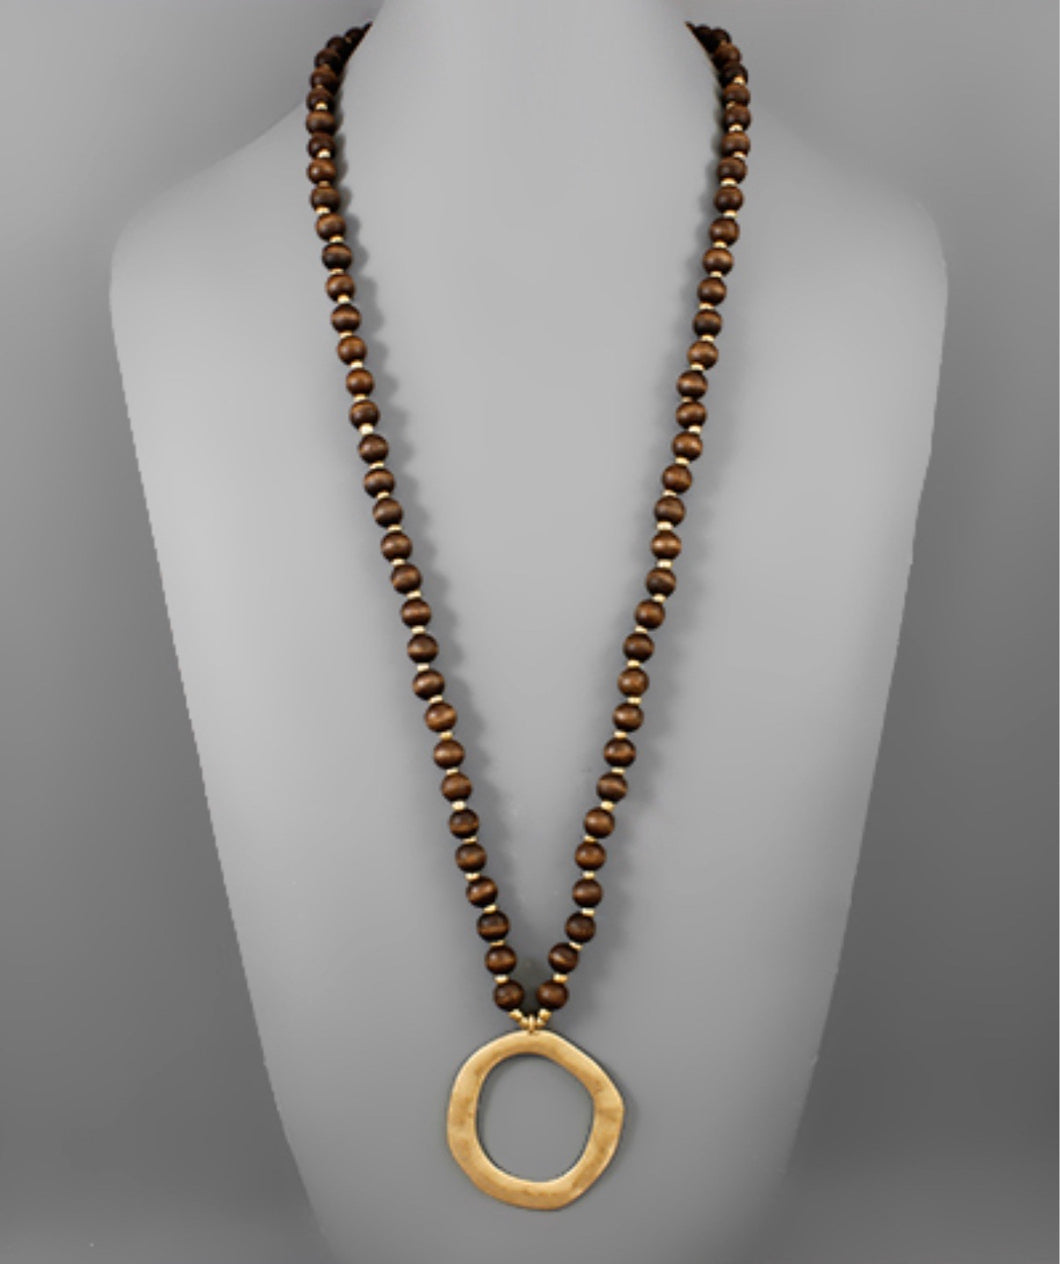 Dark Brown Wooden Beaded Necklace with Gold Hammered Circle